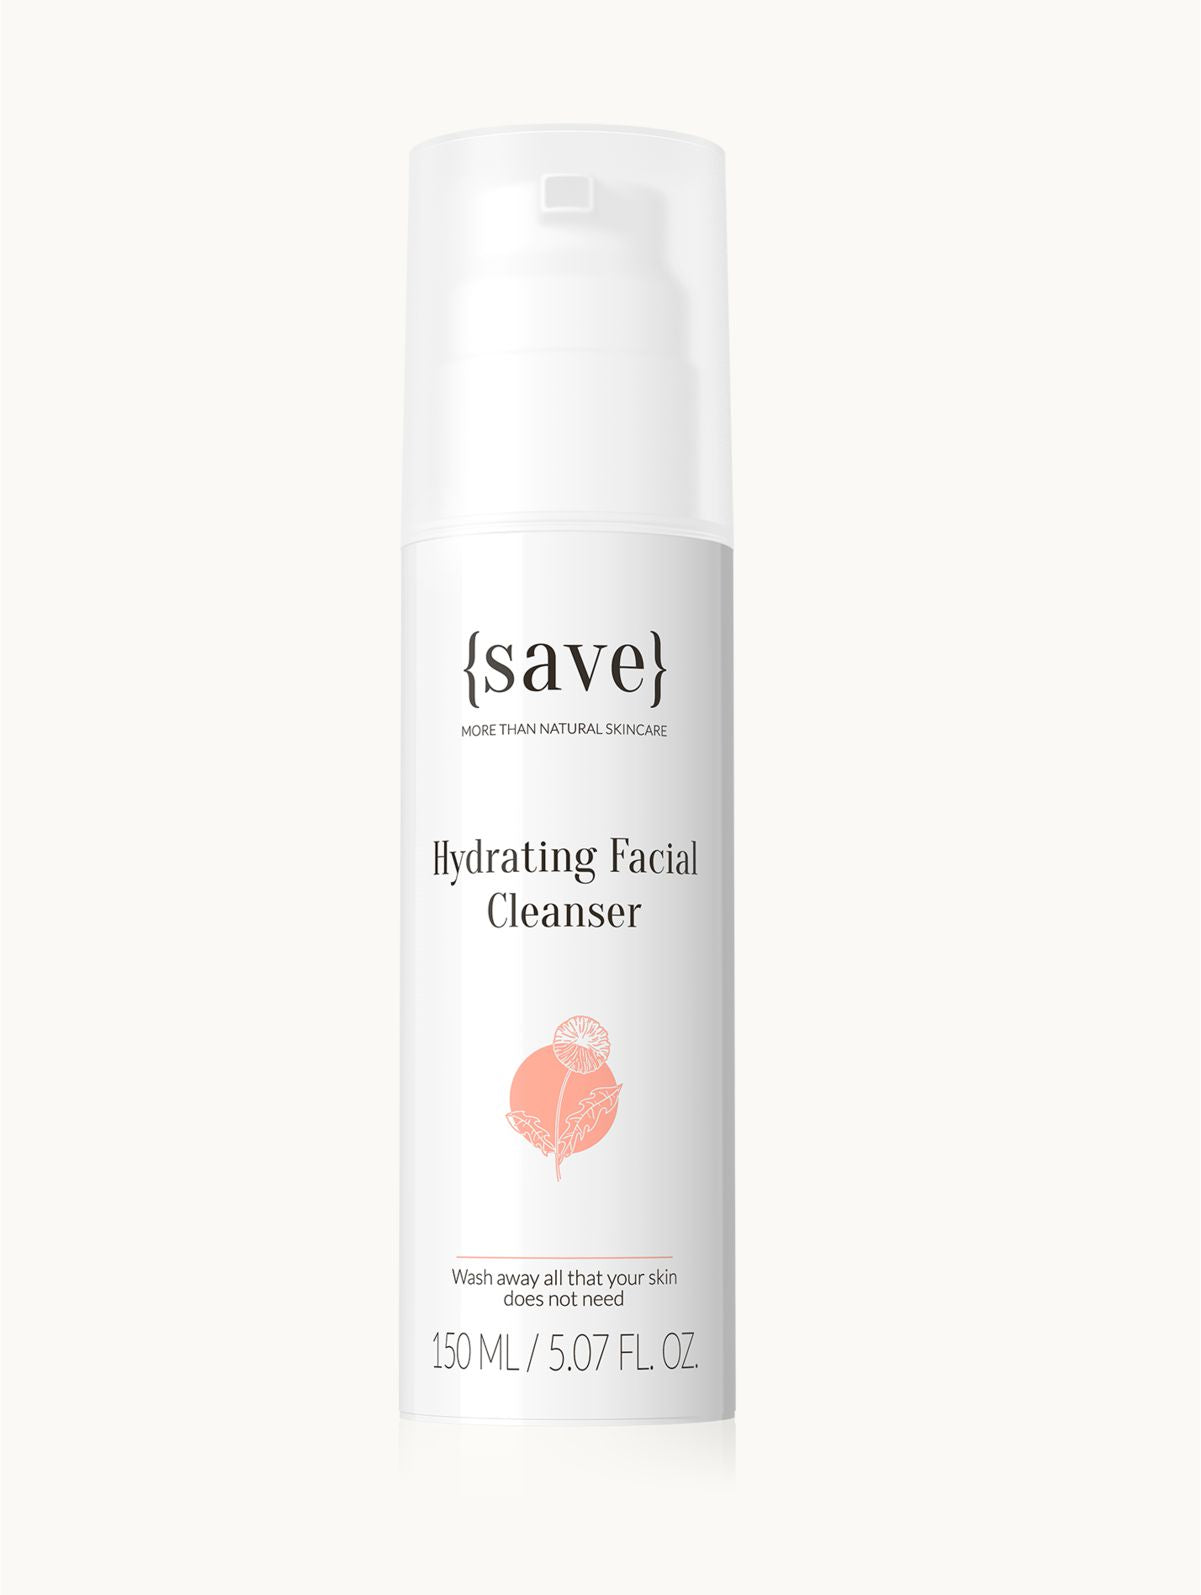 Hydrating Facial Cleanser cleansers {save} more than natural skincare